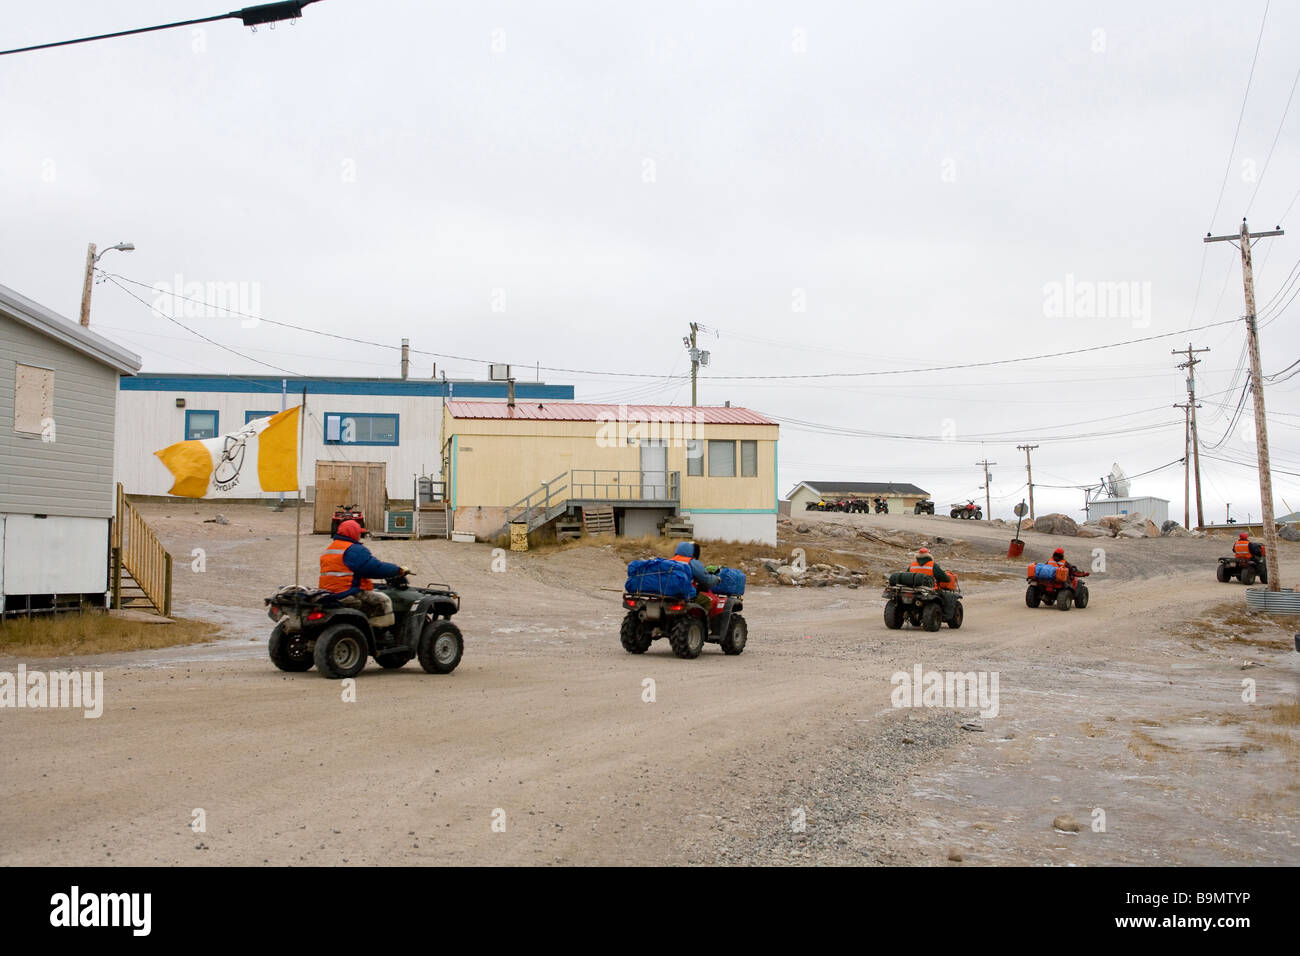 Dirt track with row of Canadian Rangers leaving on quad bikes, Canadian Arctic, Canada - Stock Image